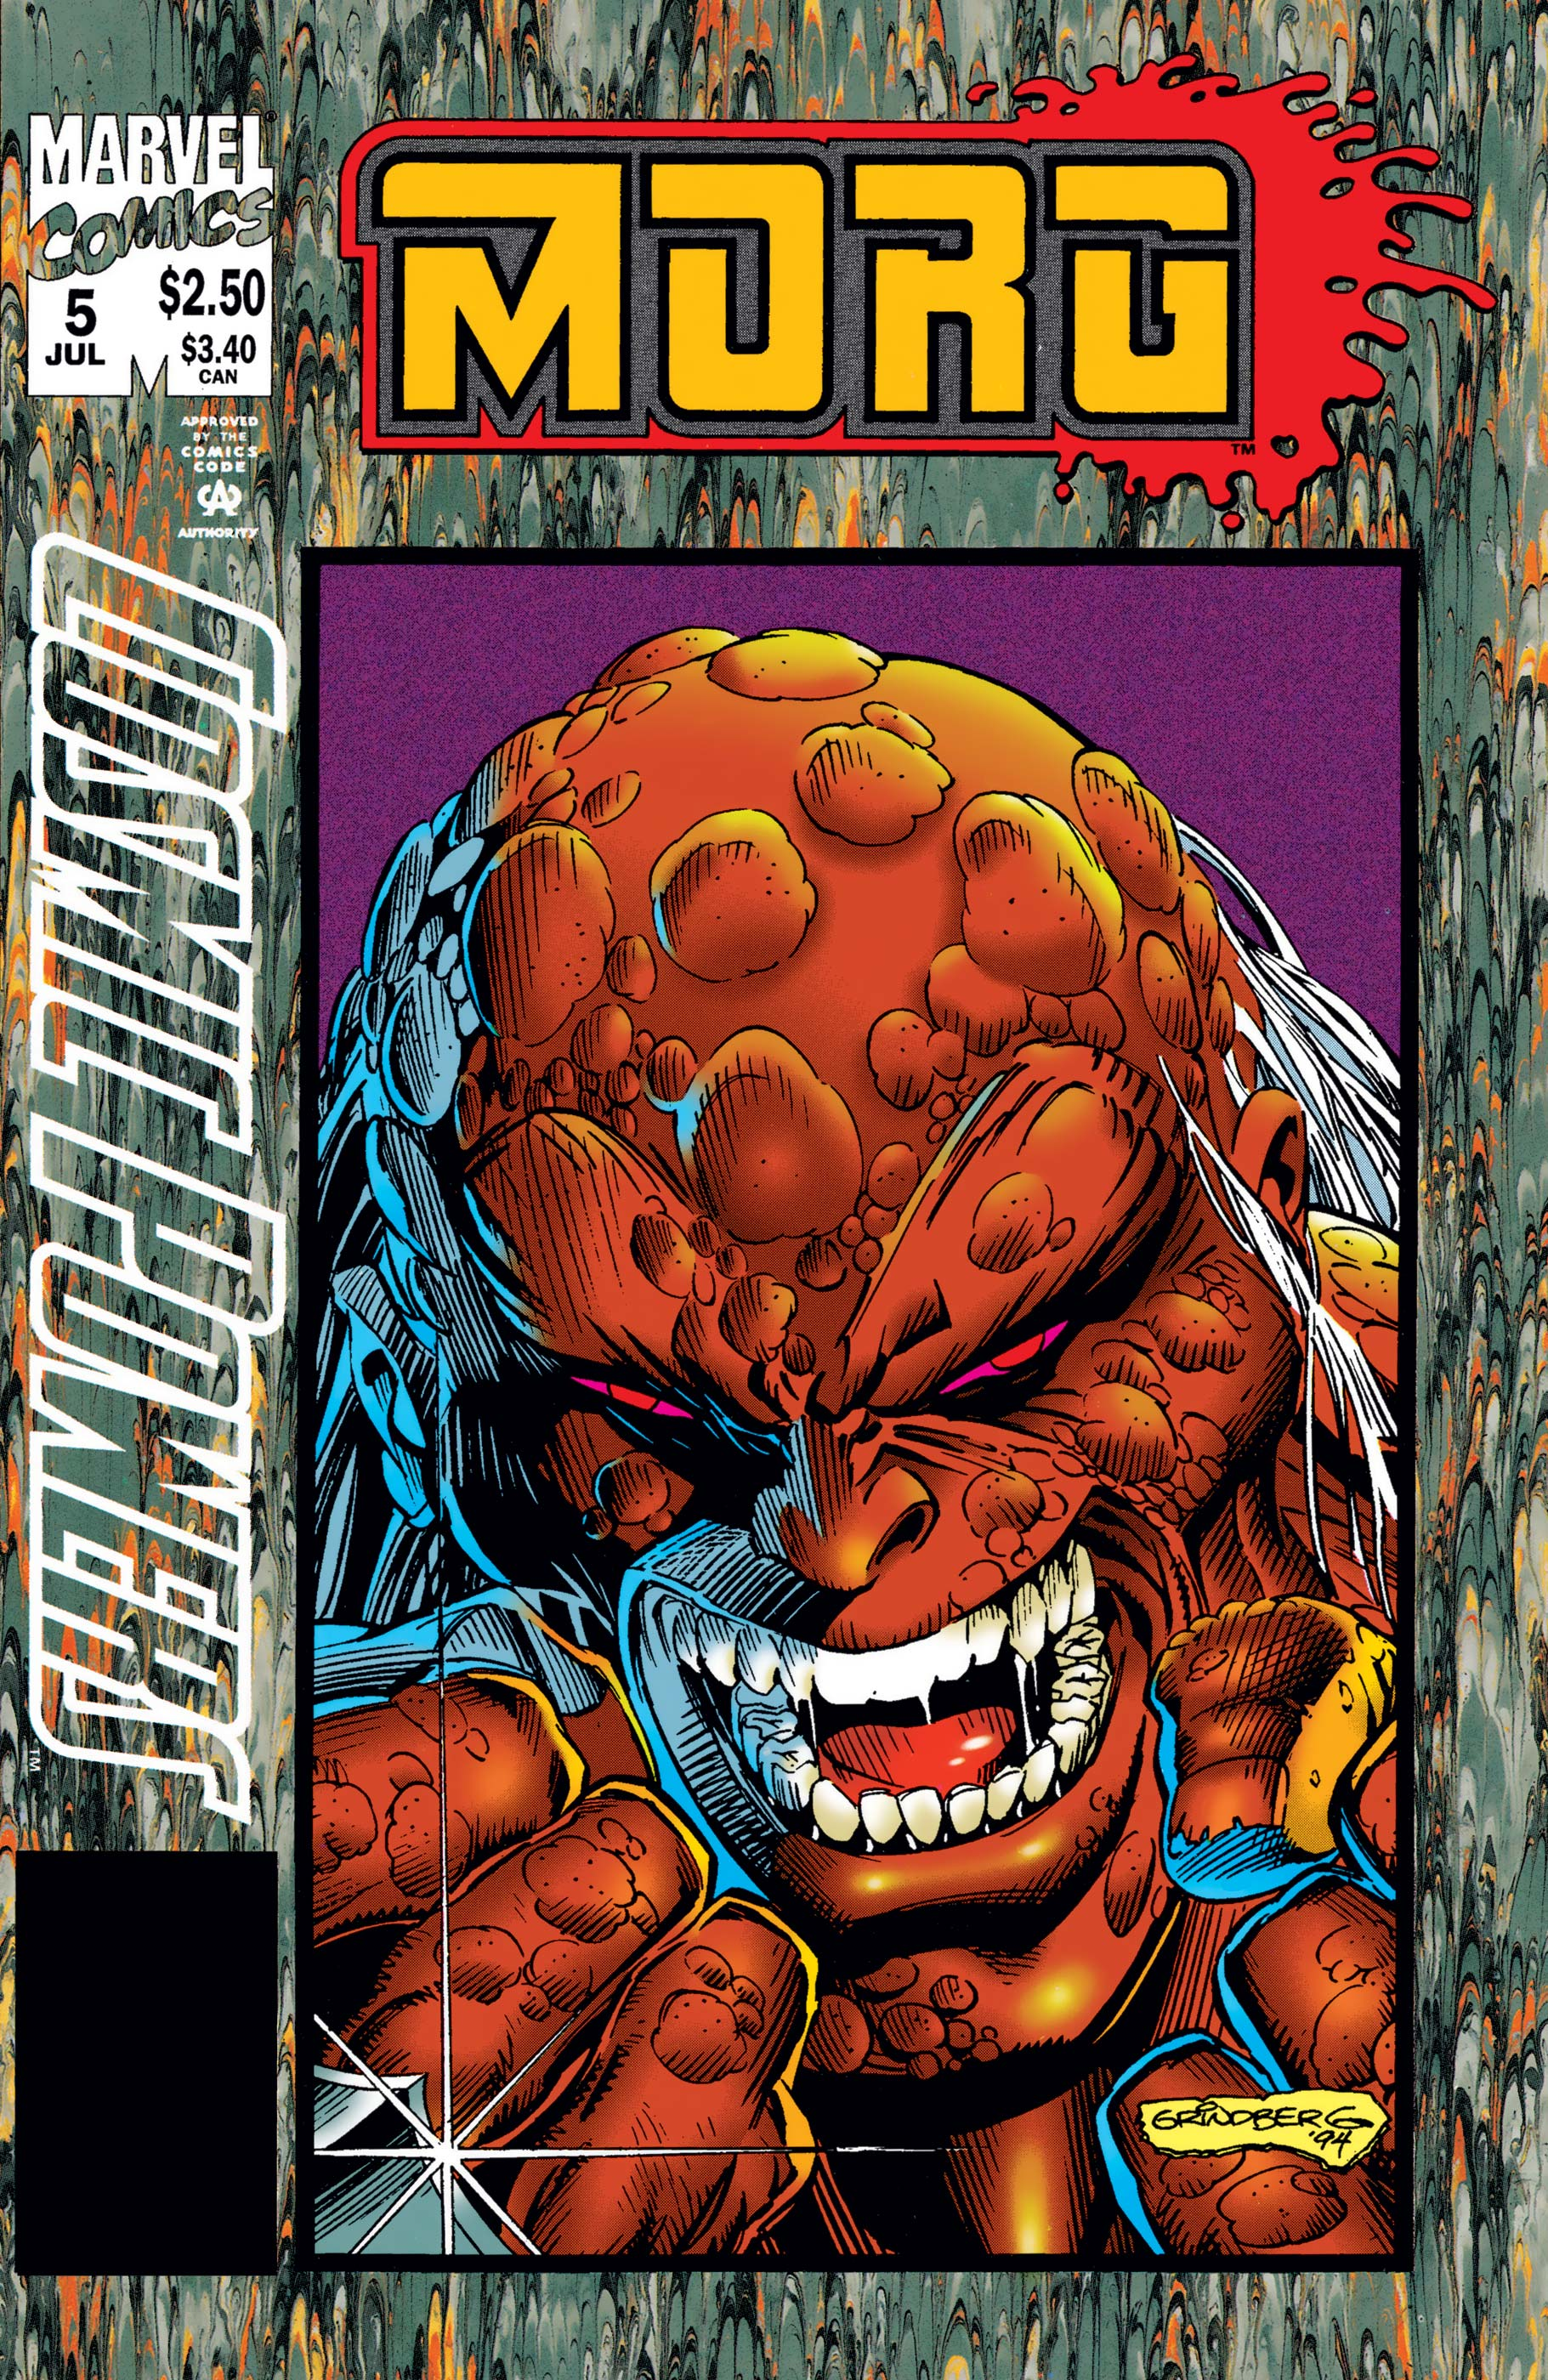 Cosmic Powers (1994) #5